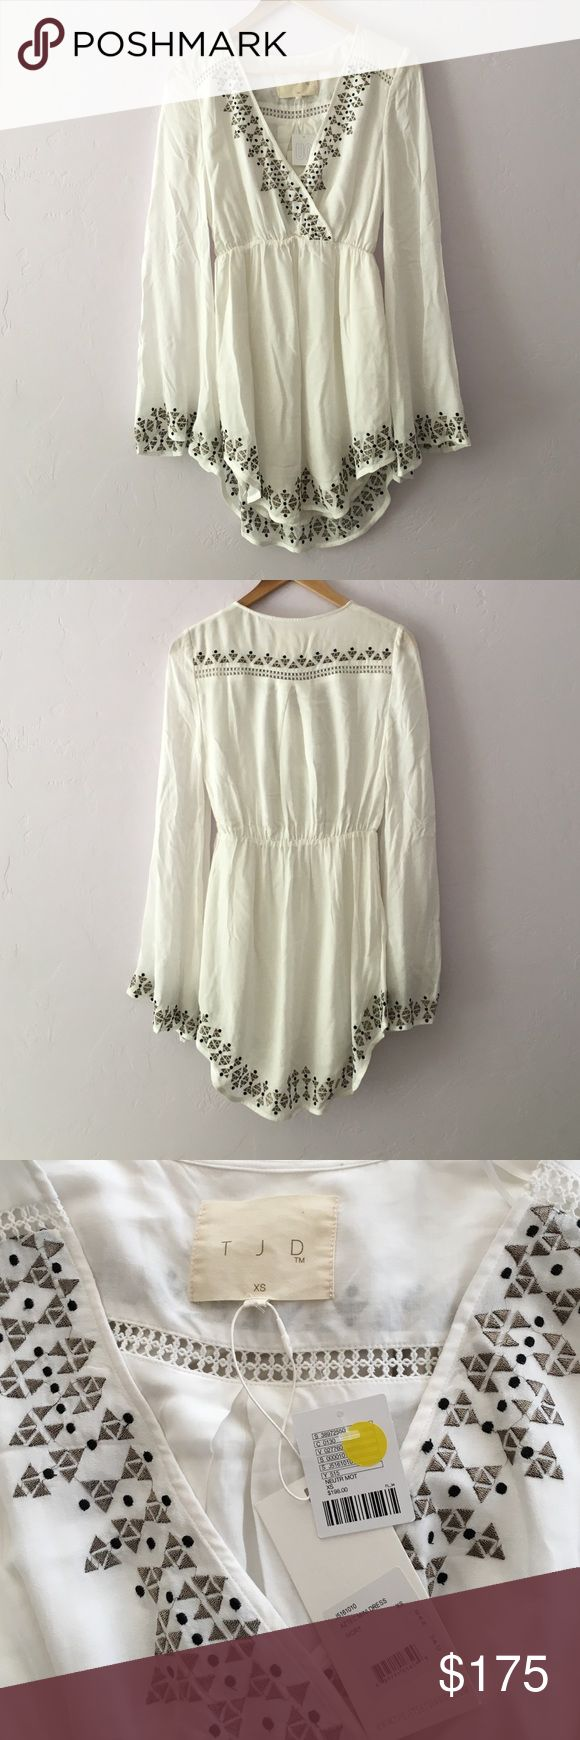 """The Jetset Diaries Aztec Mini Dress NWT TJD dress in """"Ivory."""" Features surpliced low-v neckline, contrast eyelet trim & embroidery and flowing sleeves. So beautiful and intricately detailed. One teeny tiny spot in the front near the neckline that I'm 99.99% sure would come out if washed. Fits XS or Small. Bought at Urban Outfitters. **LOWER ON Ⓜ️** The Jetset Diaries Dresses Mini"""